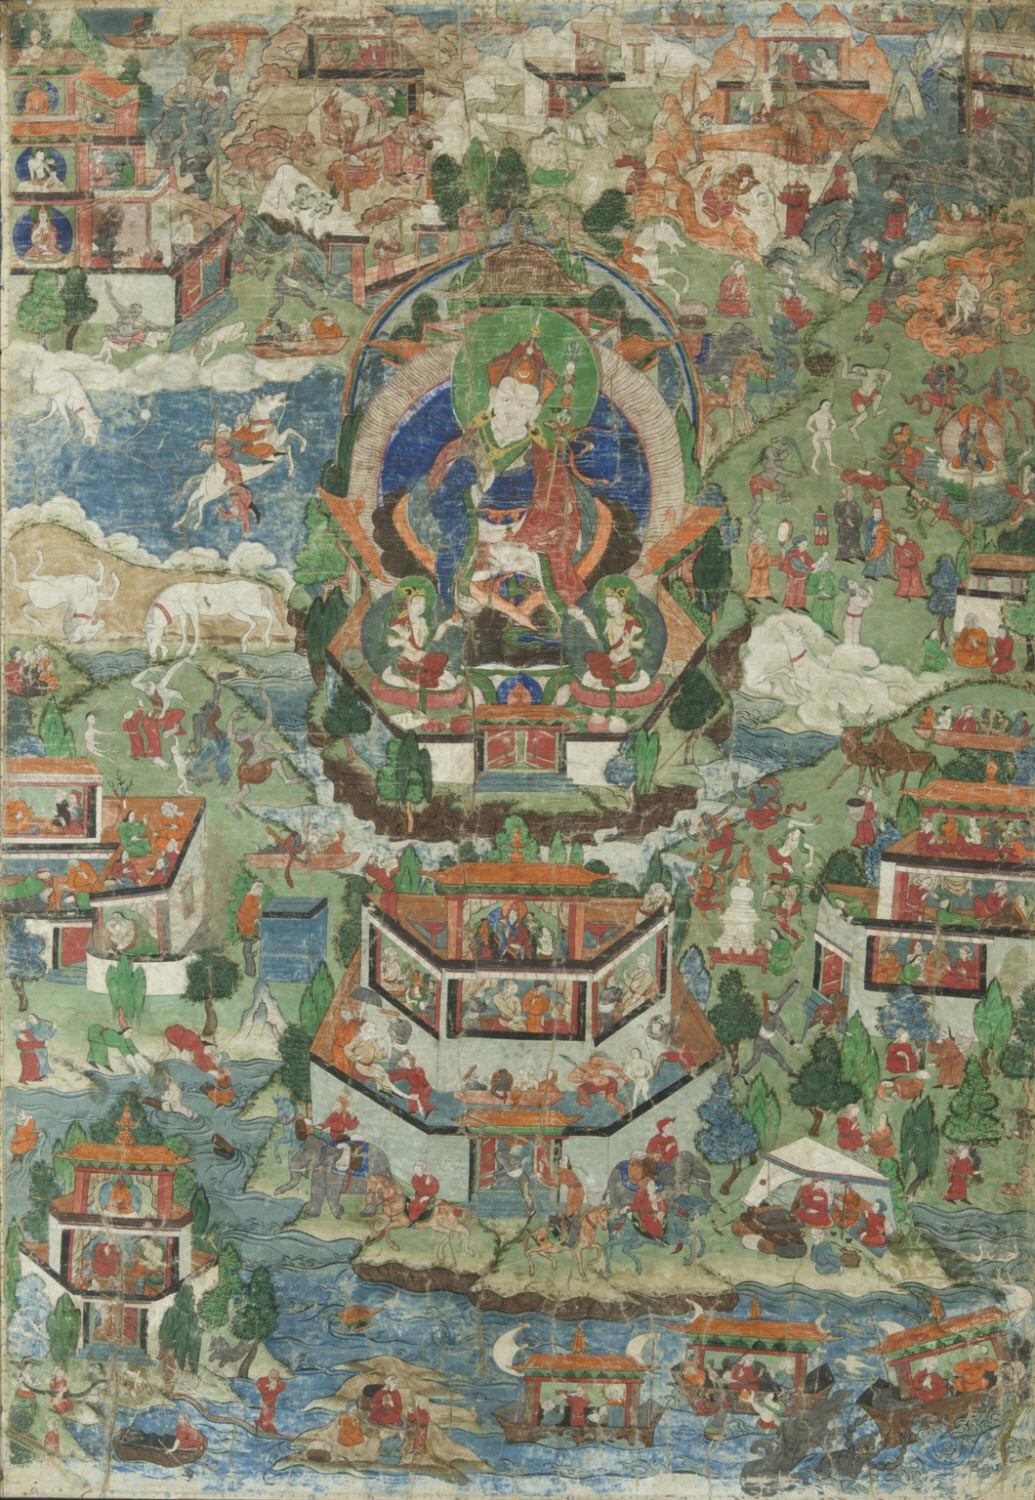 Padmasambhava's Paradise Surrounded by Scenes from the Life of Padma 'od 'bar